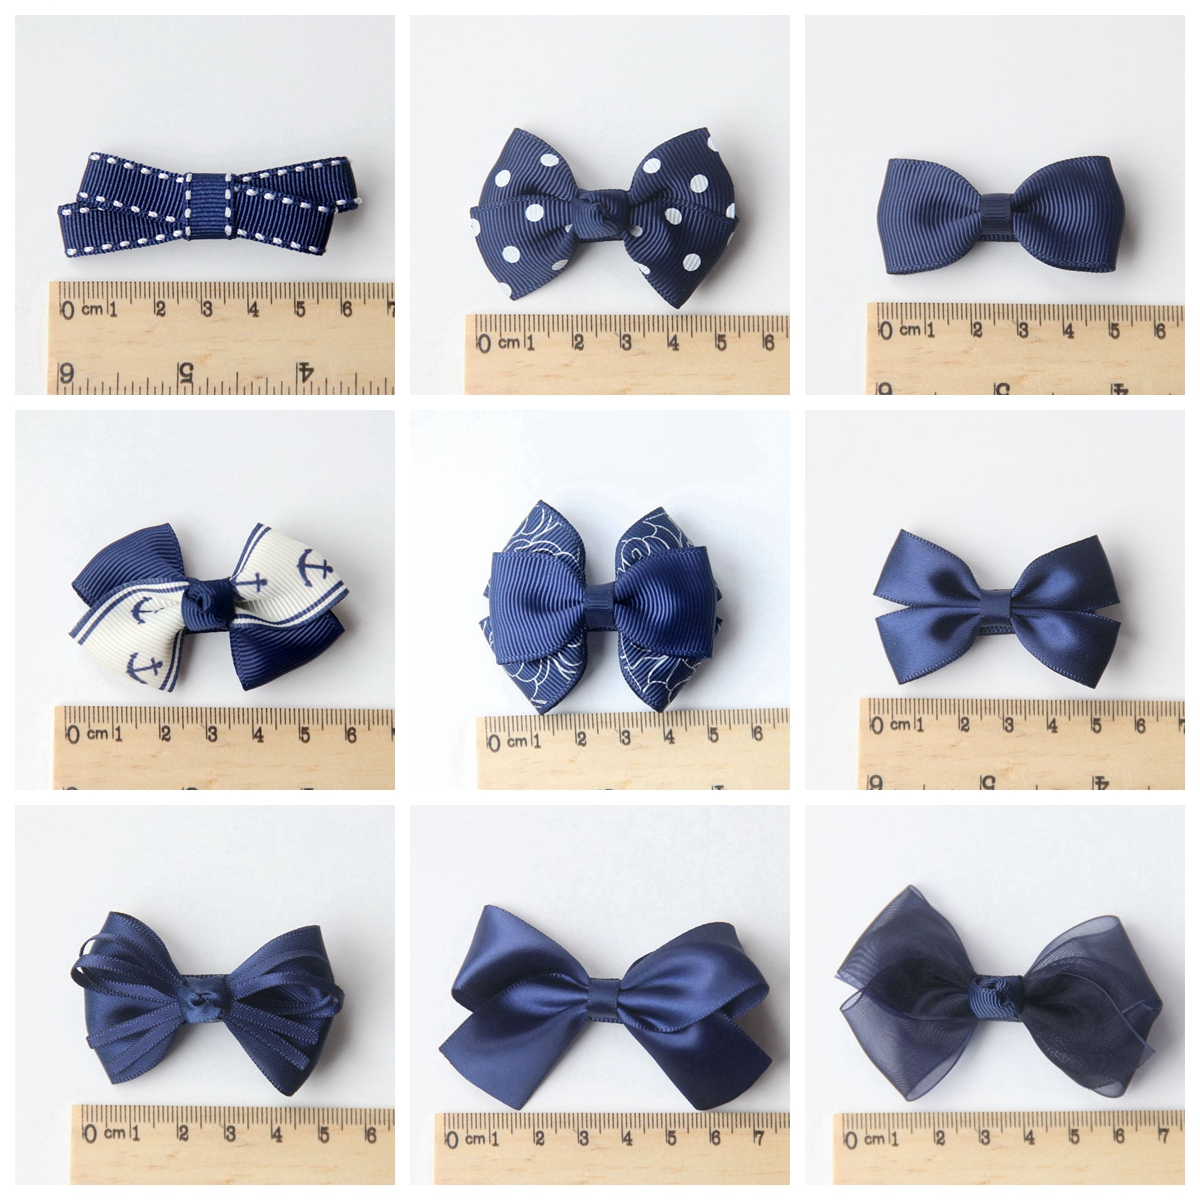 Yingzi handmade genuine new baby accessories headdress hair accessories little butterfly hairpin navy blue 370-s